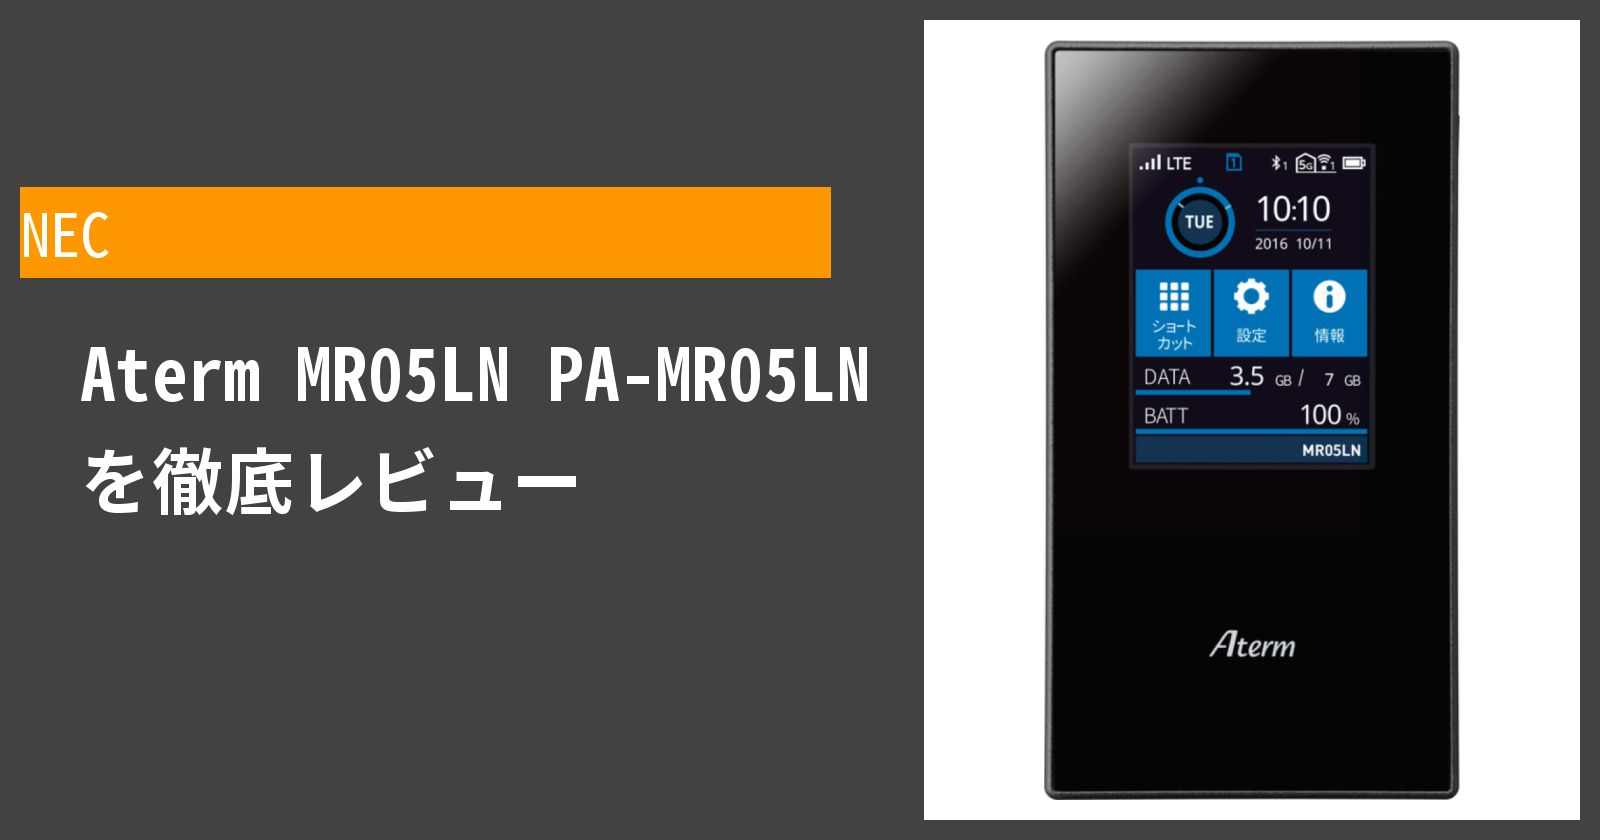 Aterm MR05LN PA-MR05LNを徹底評価